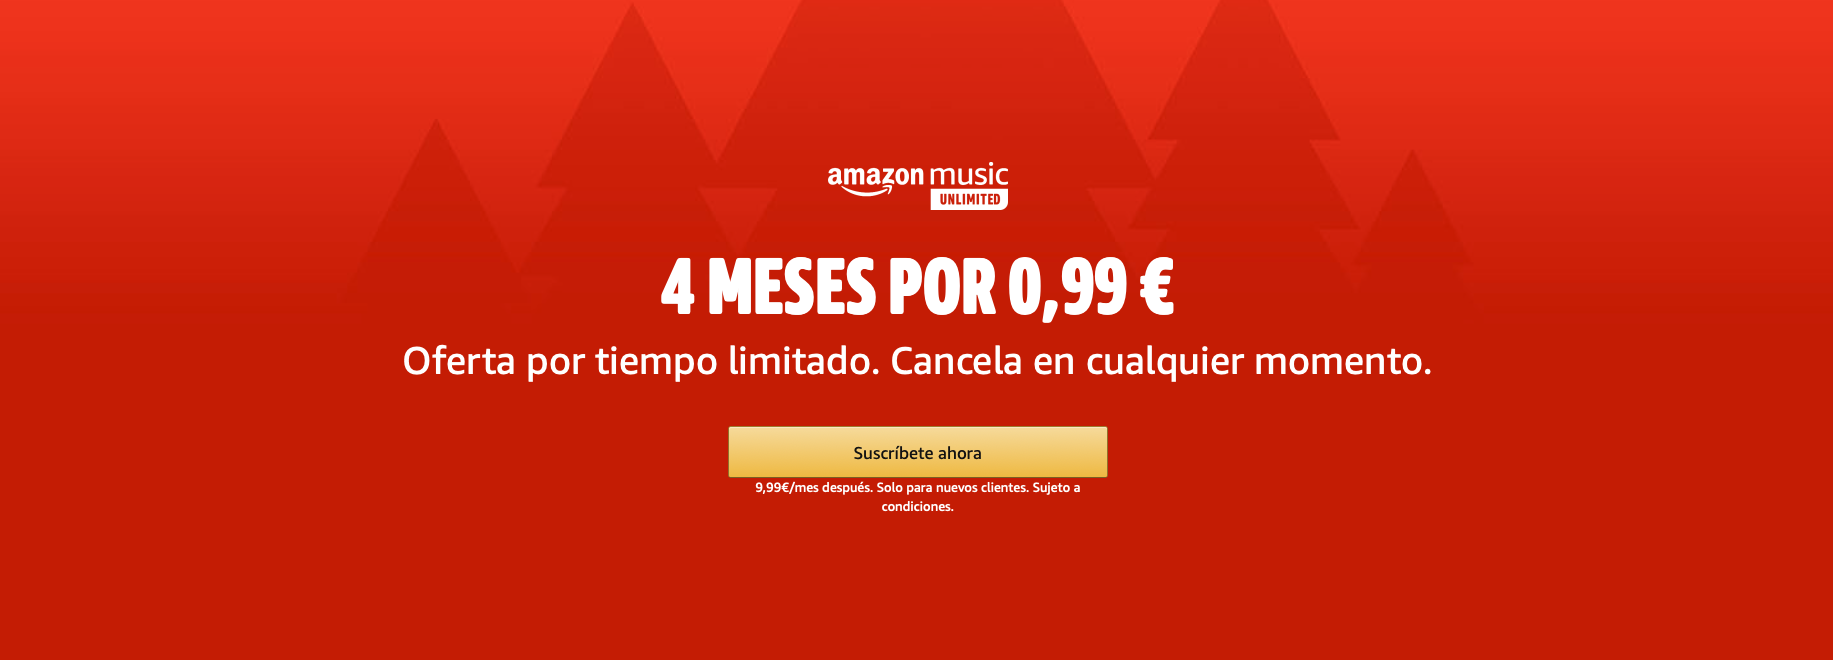 Oferta <stro />Amazon</strong>® Music» width=»1833″ height=»660″ srcset=»https://www.androidsis.com/wp-content/uploads/2019/11/Oferta-Amazon-Music.png 1833w, <a target=